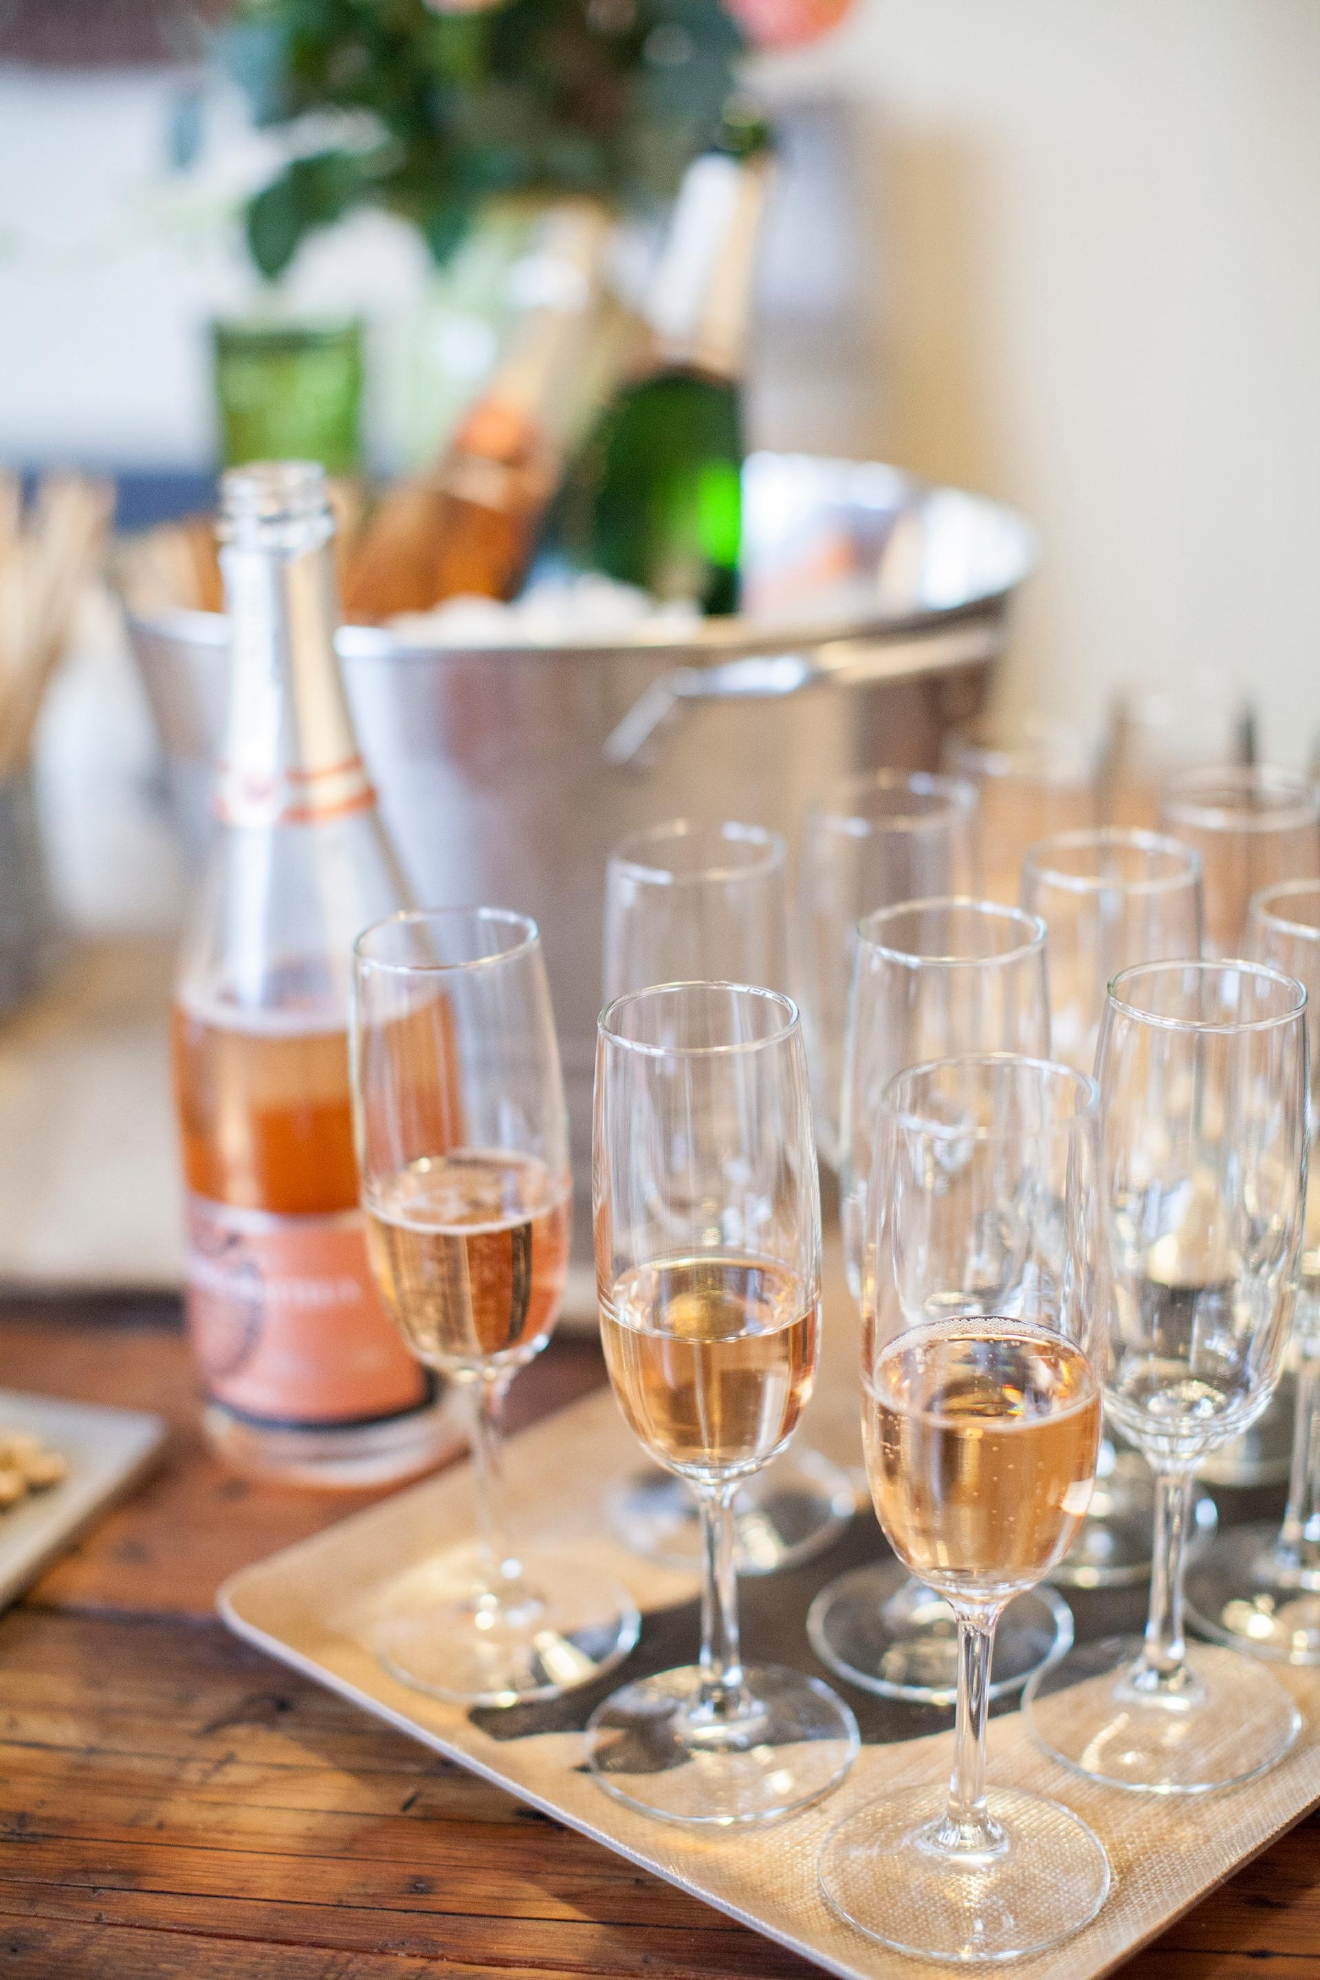 Brut Rosé and willing vessels. (Image: Katie Parra)